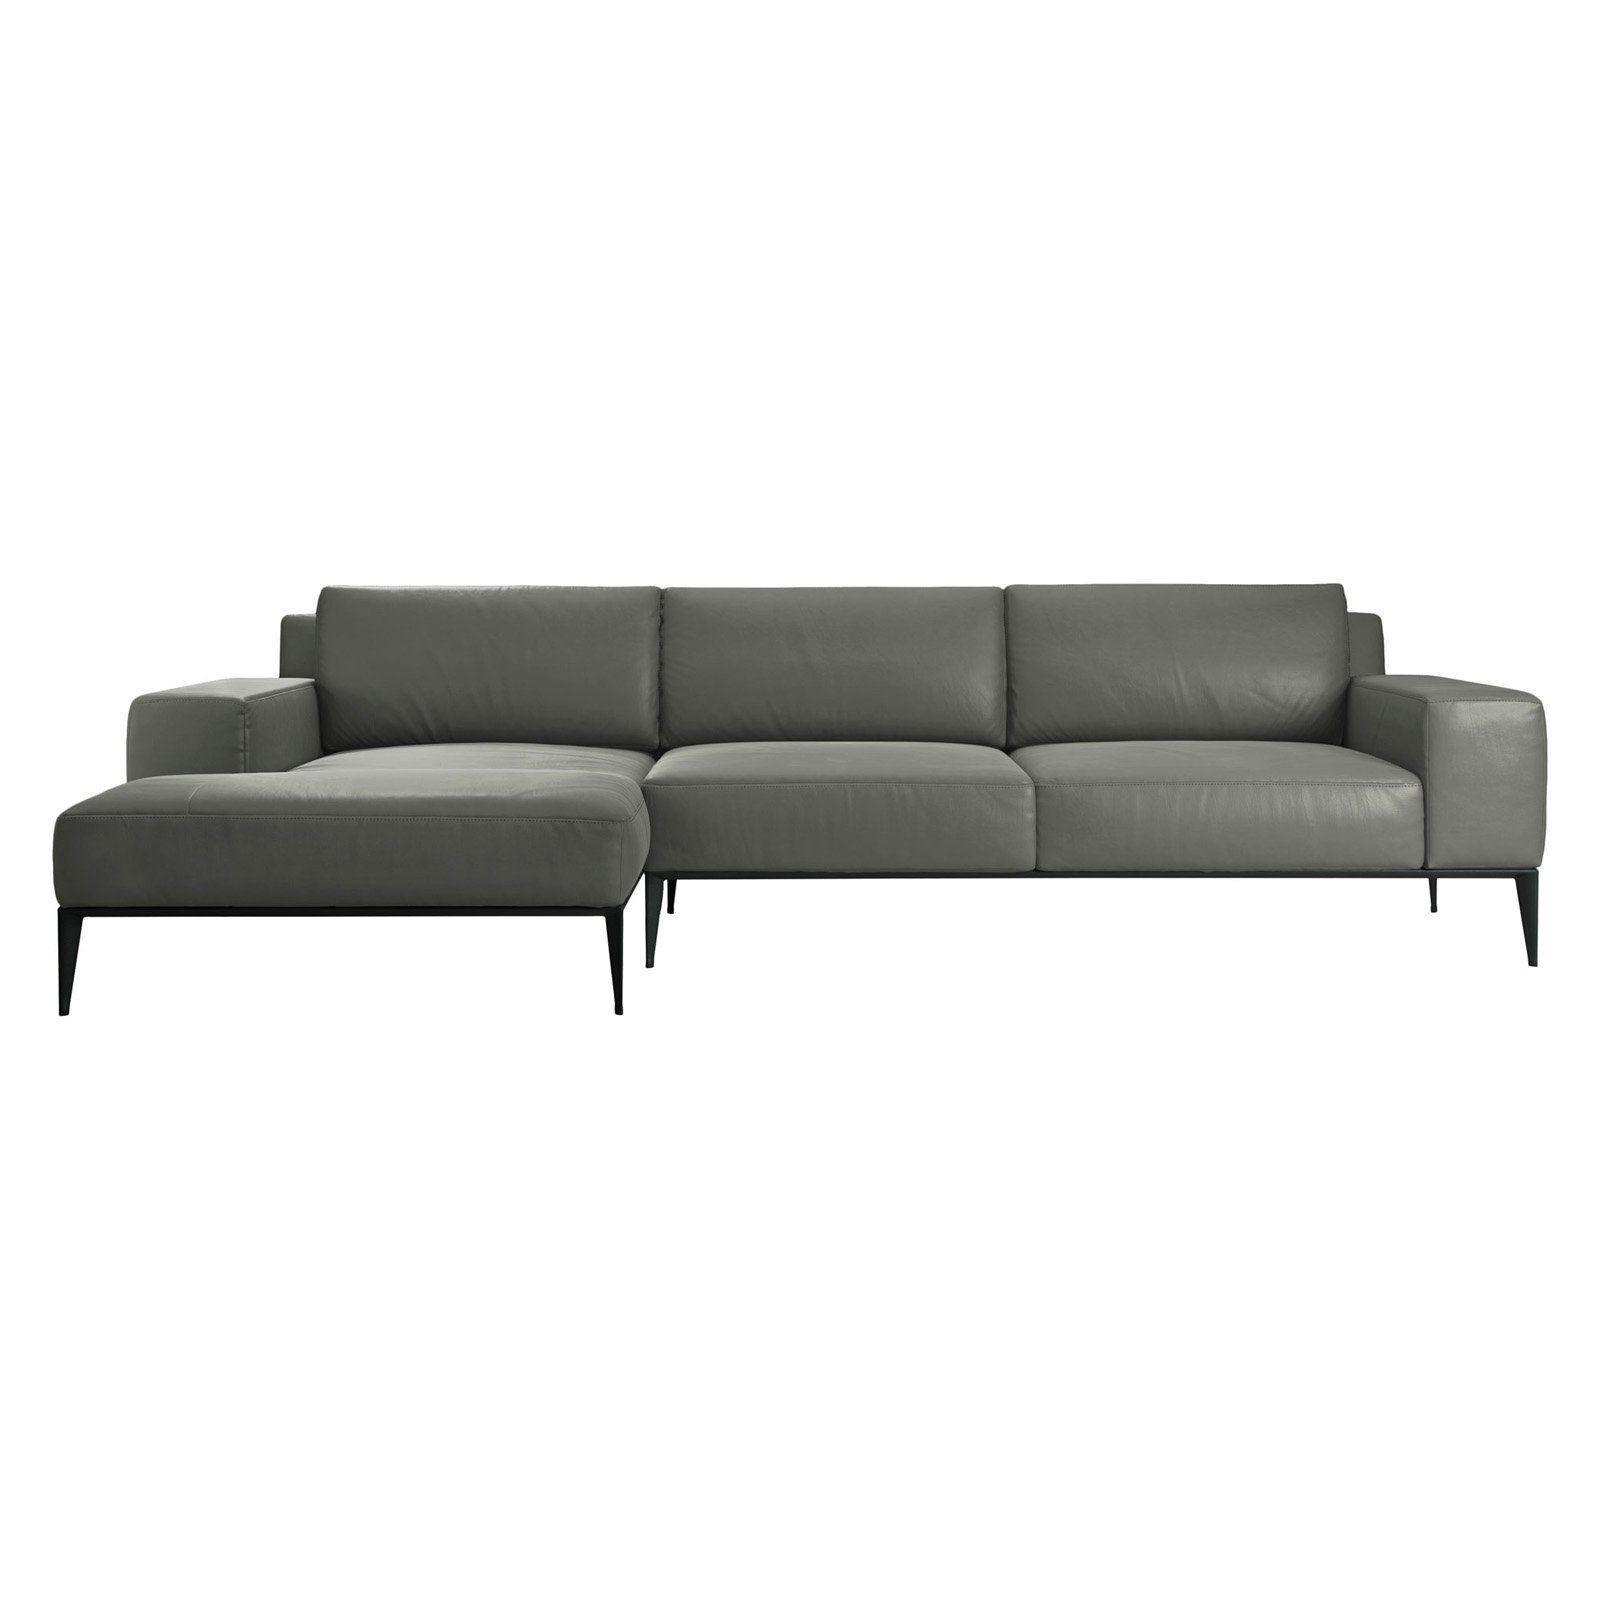 Modloft Elizabeth Sectional Sofa In 2019 Sectional Sofa